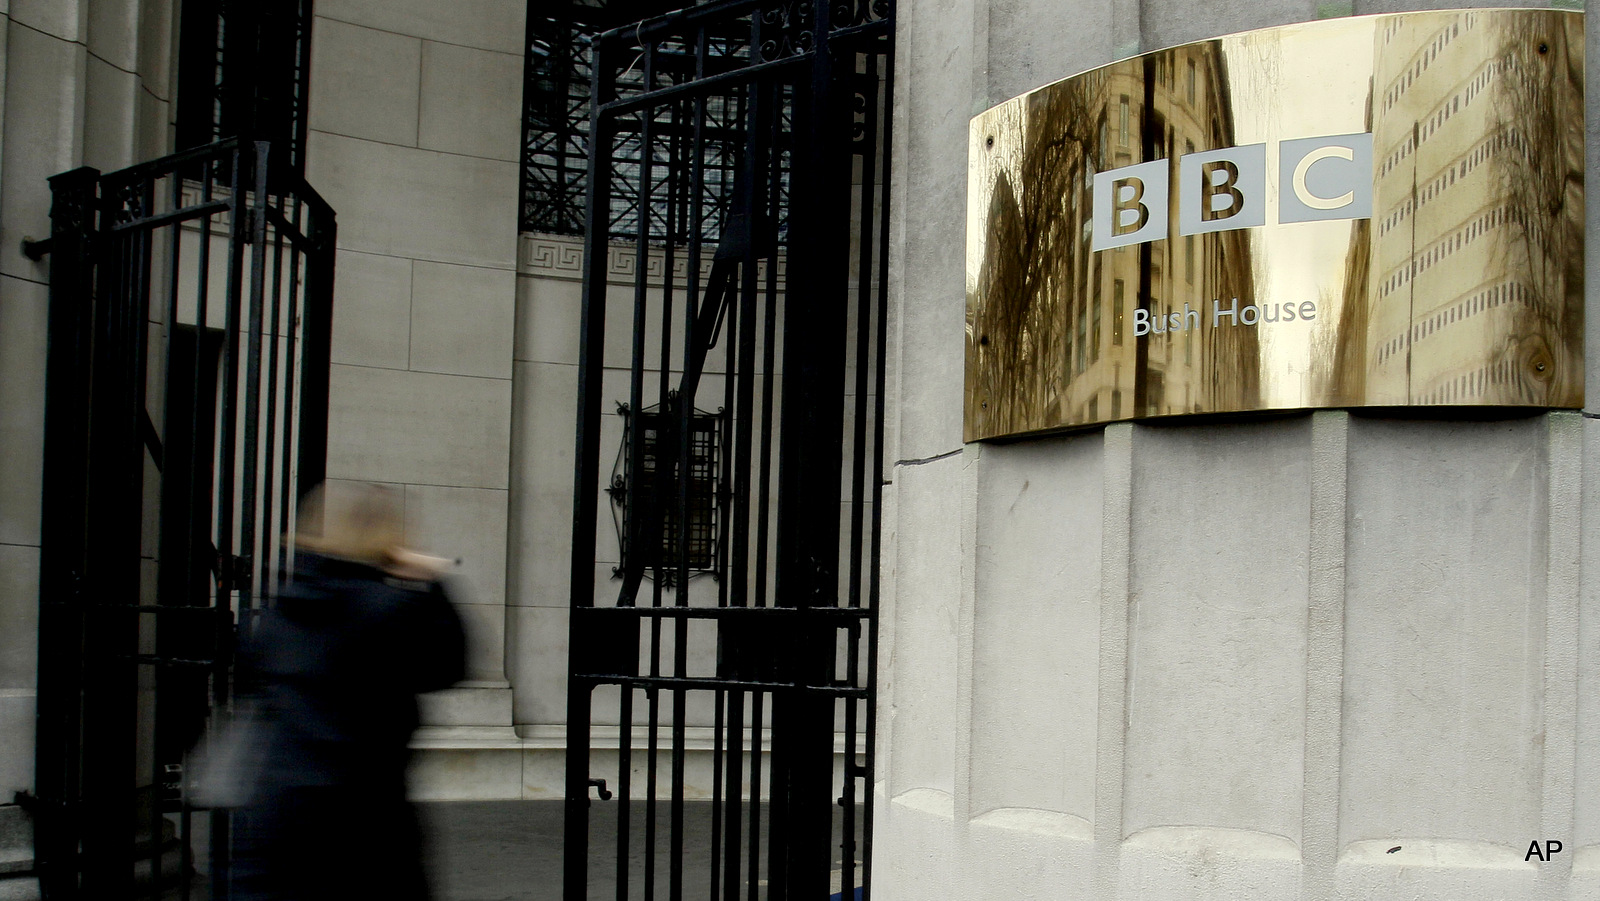 A pedestrian enters the BBC's Bush House in London.